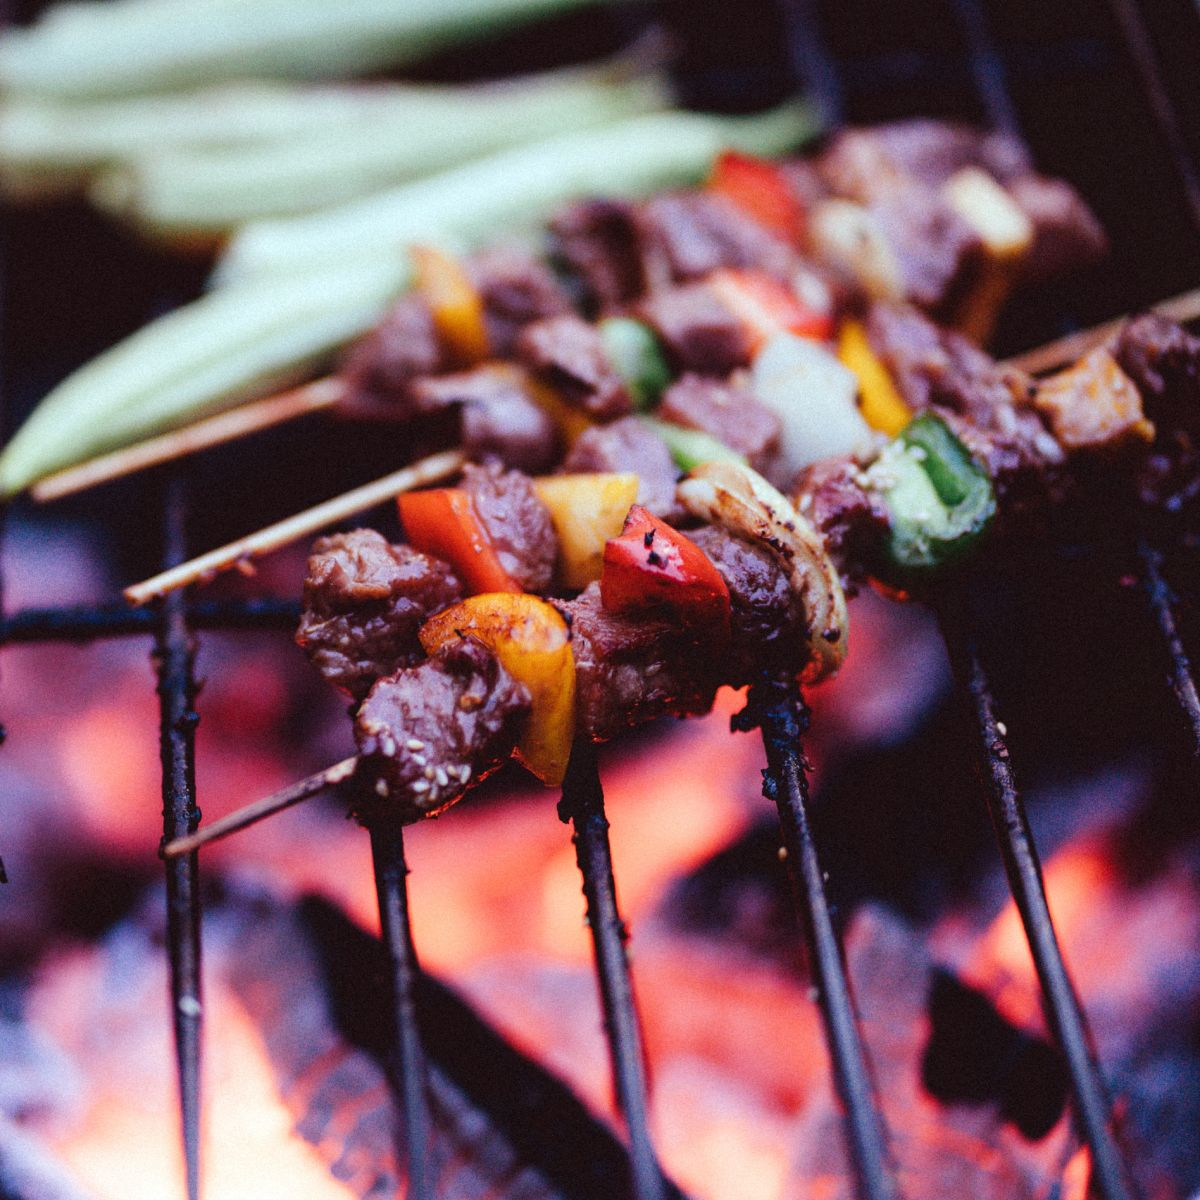 Bamboo skewers on the grill